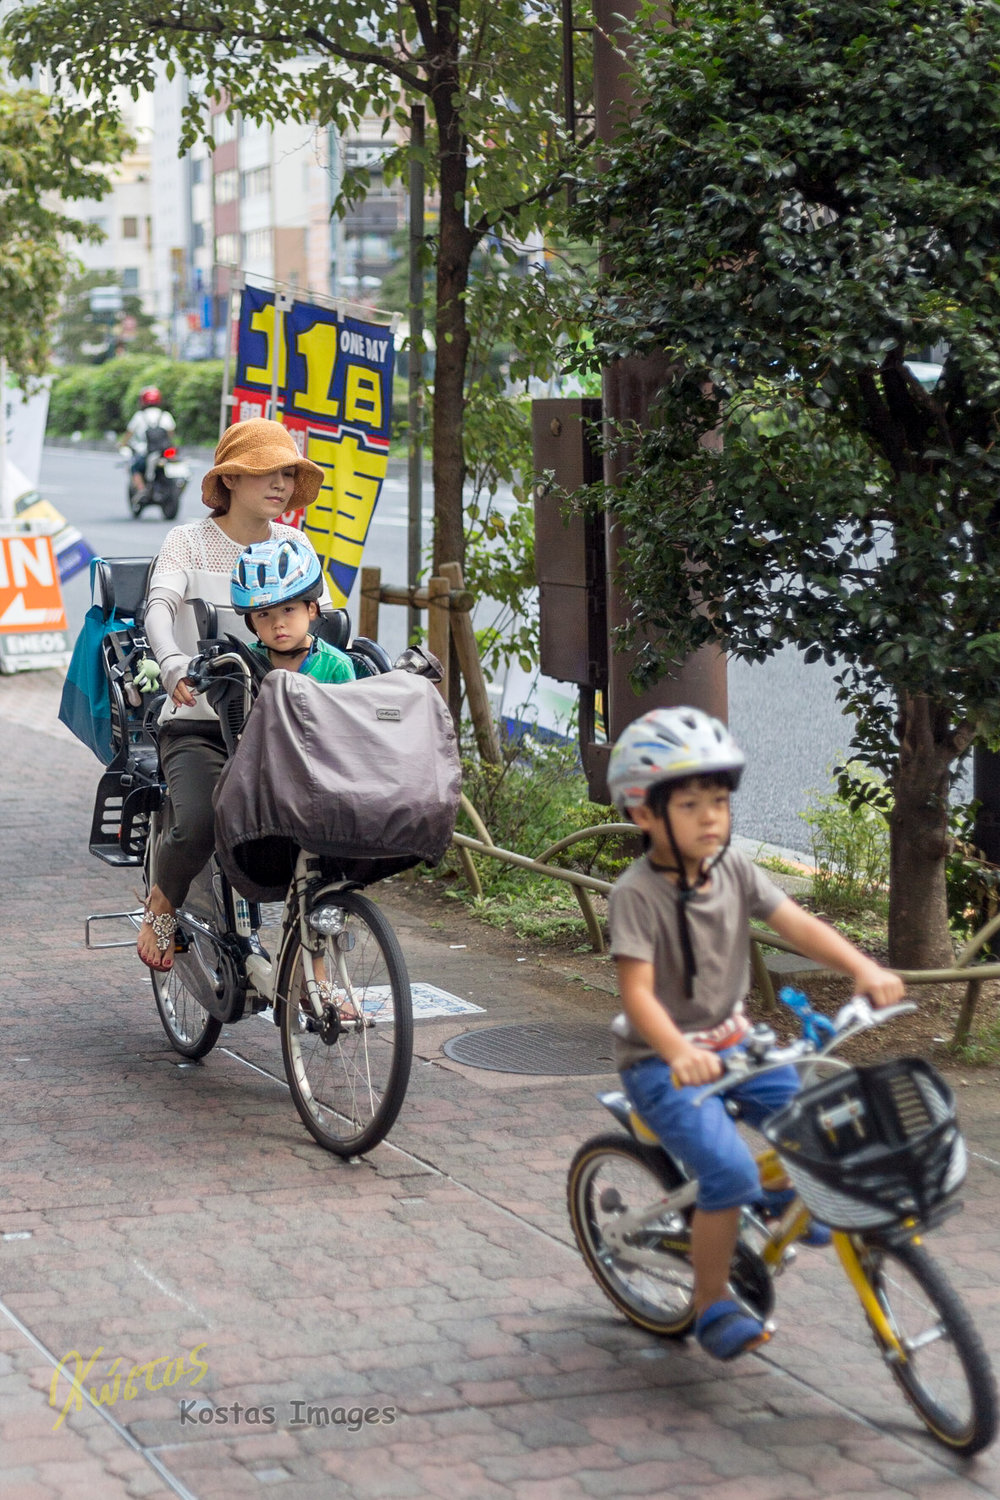 20160901-IMG_6191-Bicycle riding in Japan.jpg